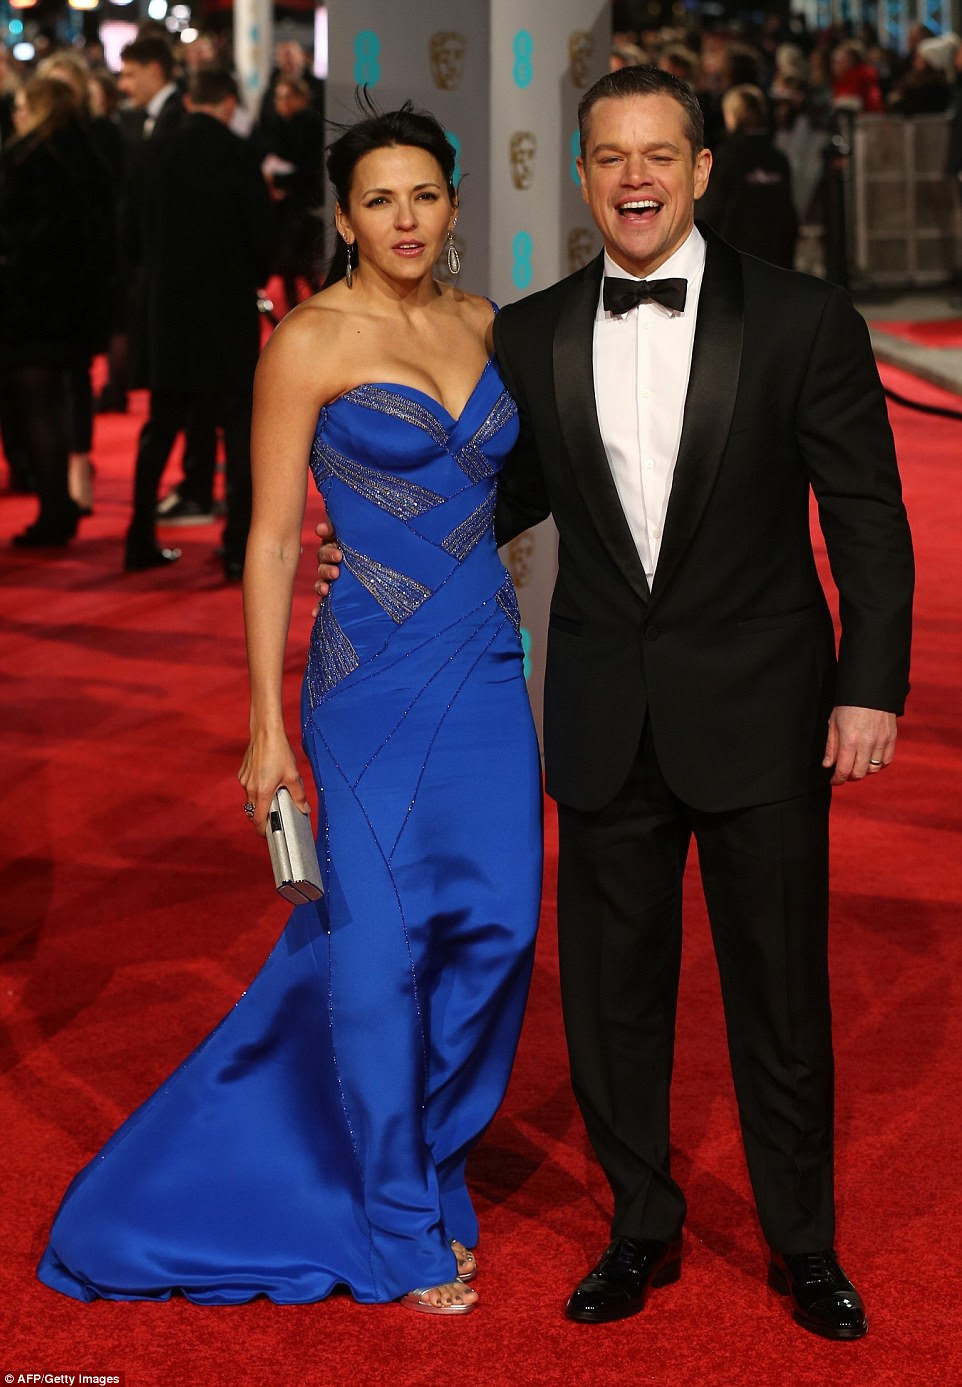 Stealing the show! The Martian actor's wife really stole the show from him, Luciana glowing in a royal blue satin gown